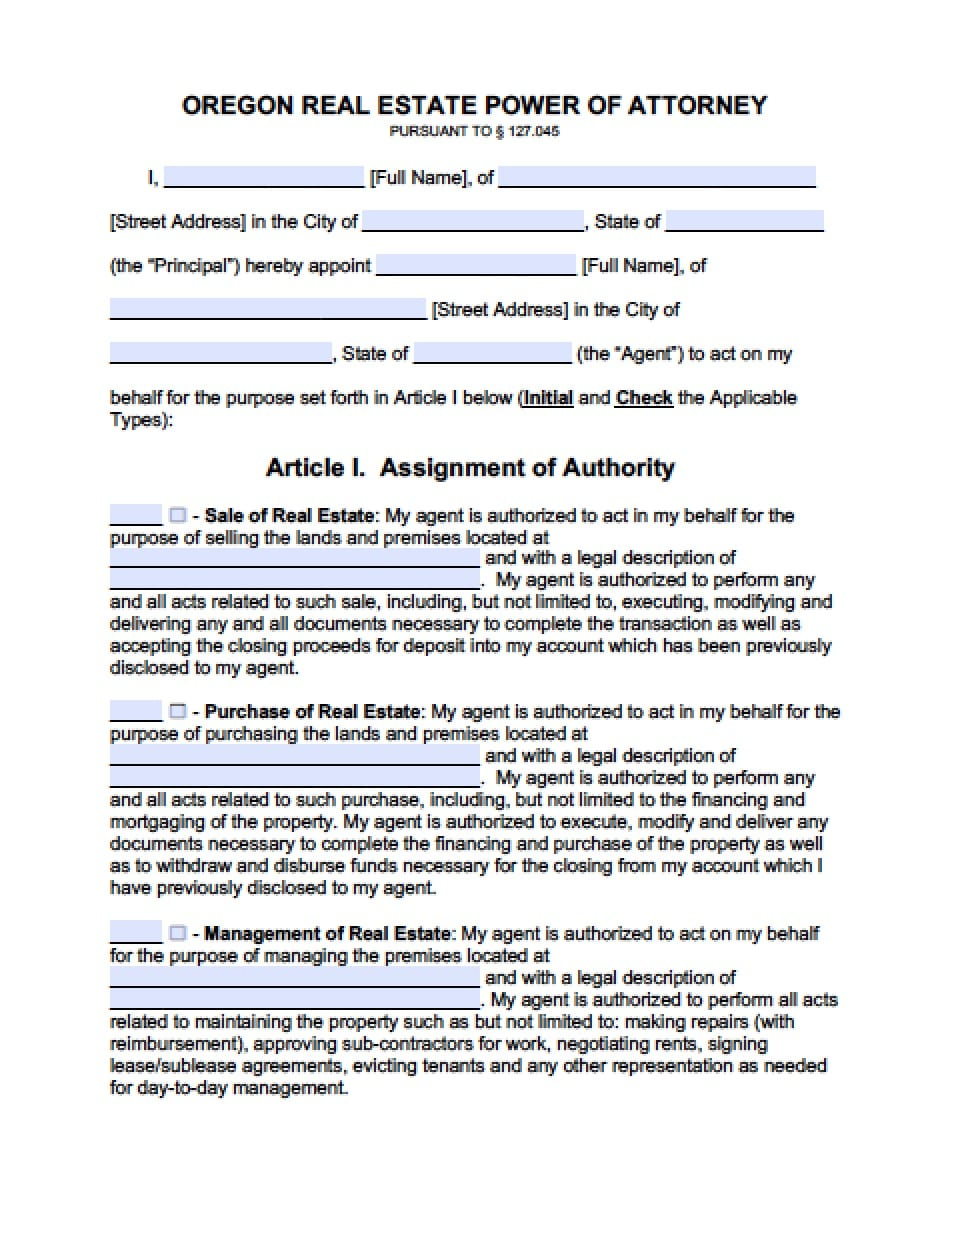 Oregon Real Estate Only Power Of Attorney Form Power Of Attorney : Power Of  Attorney